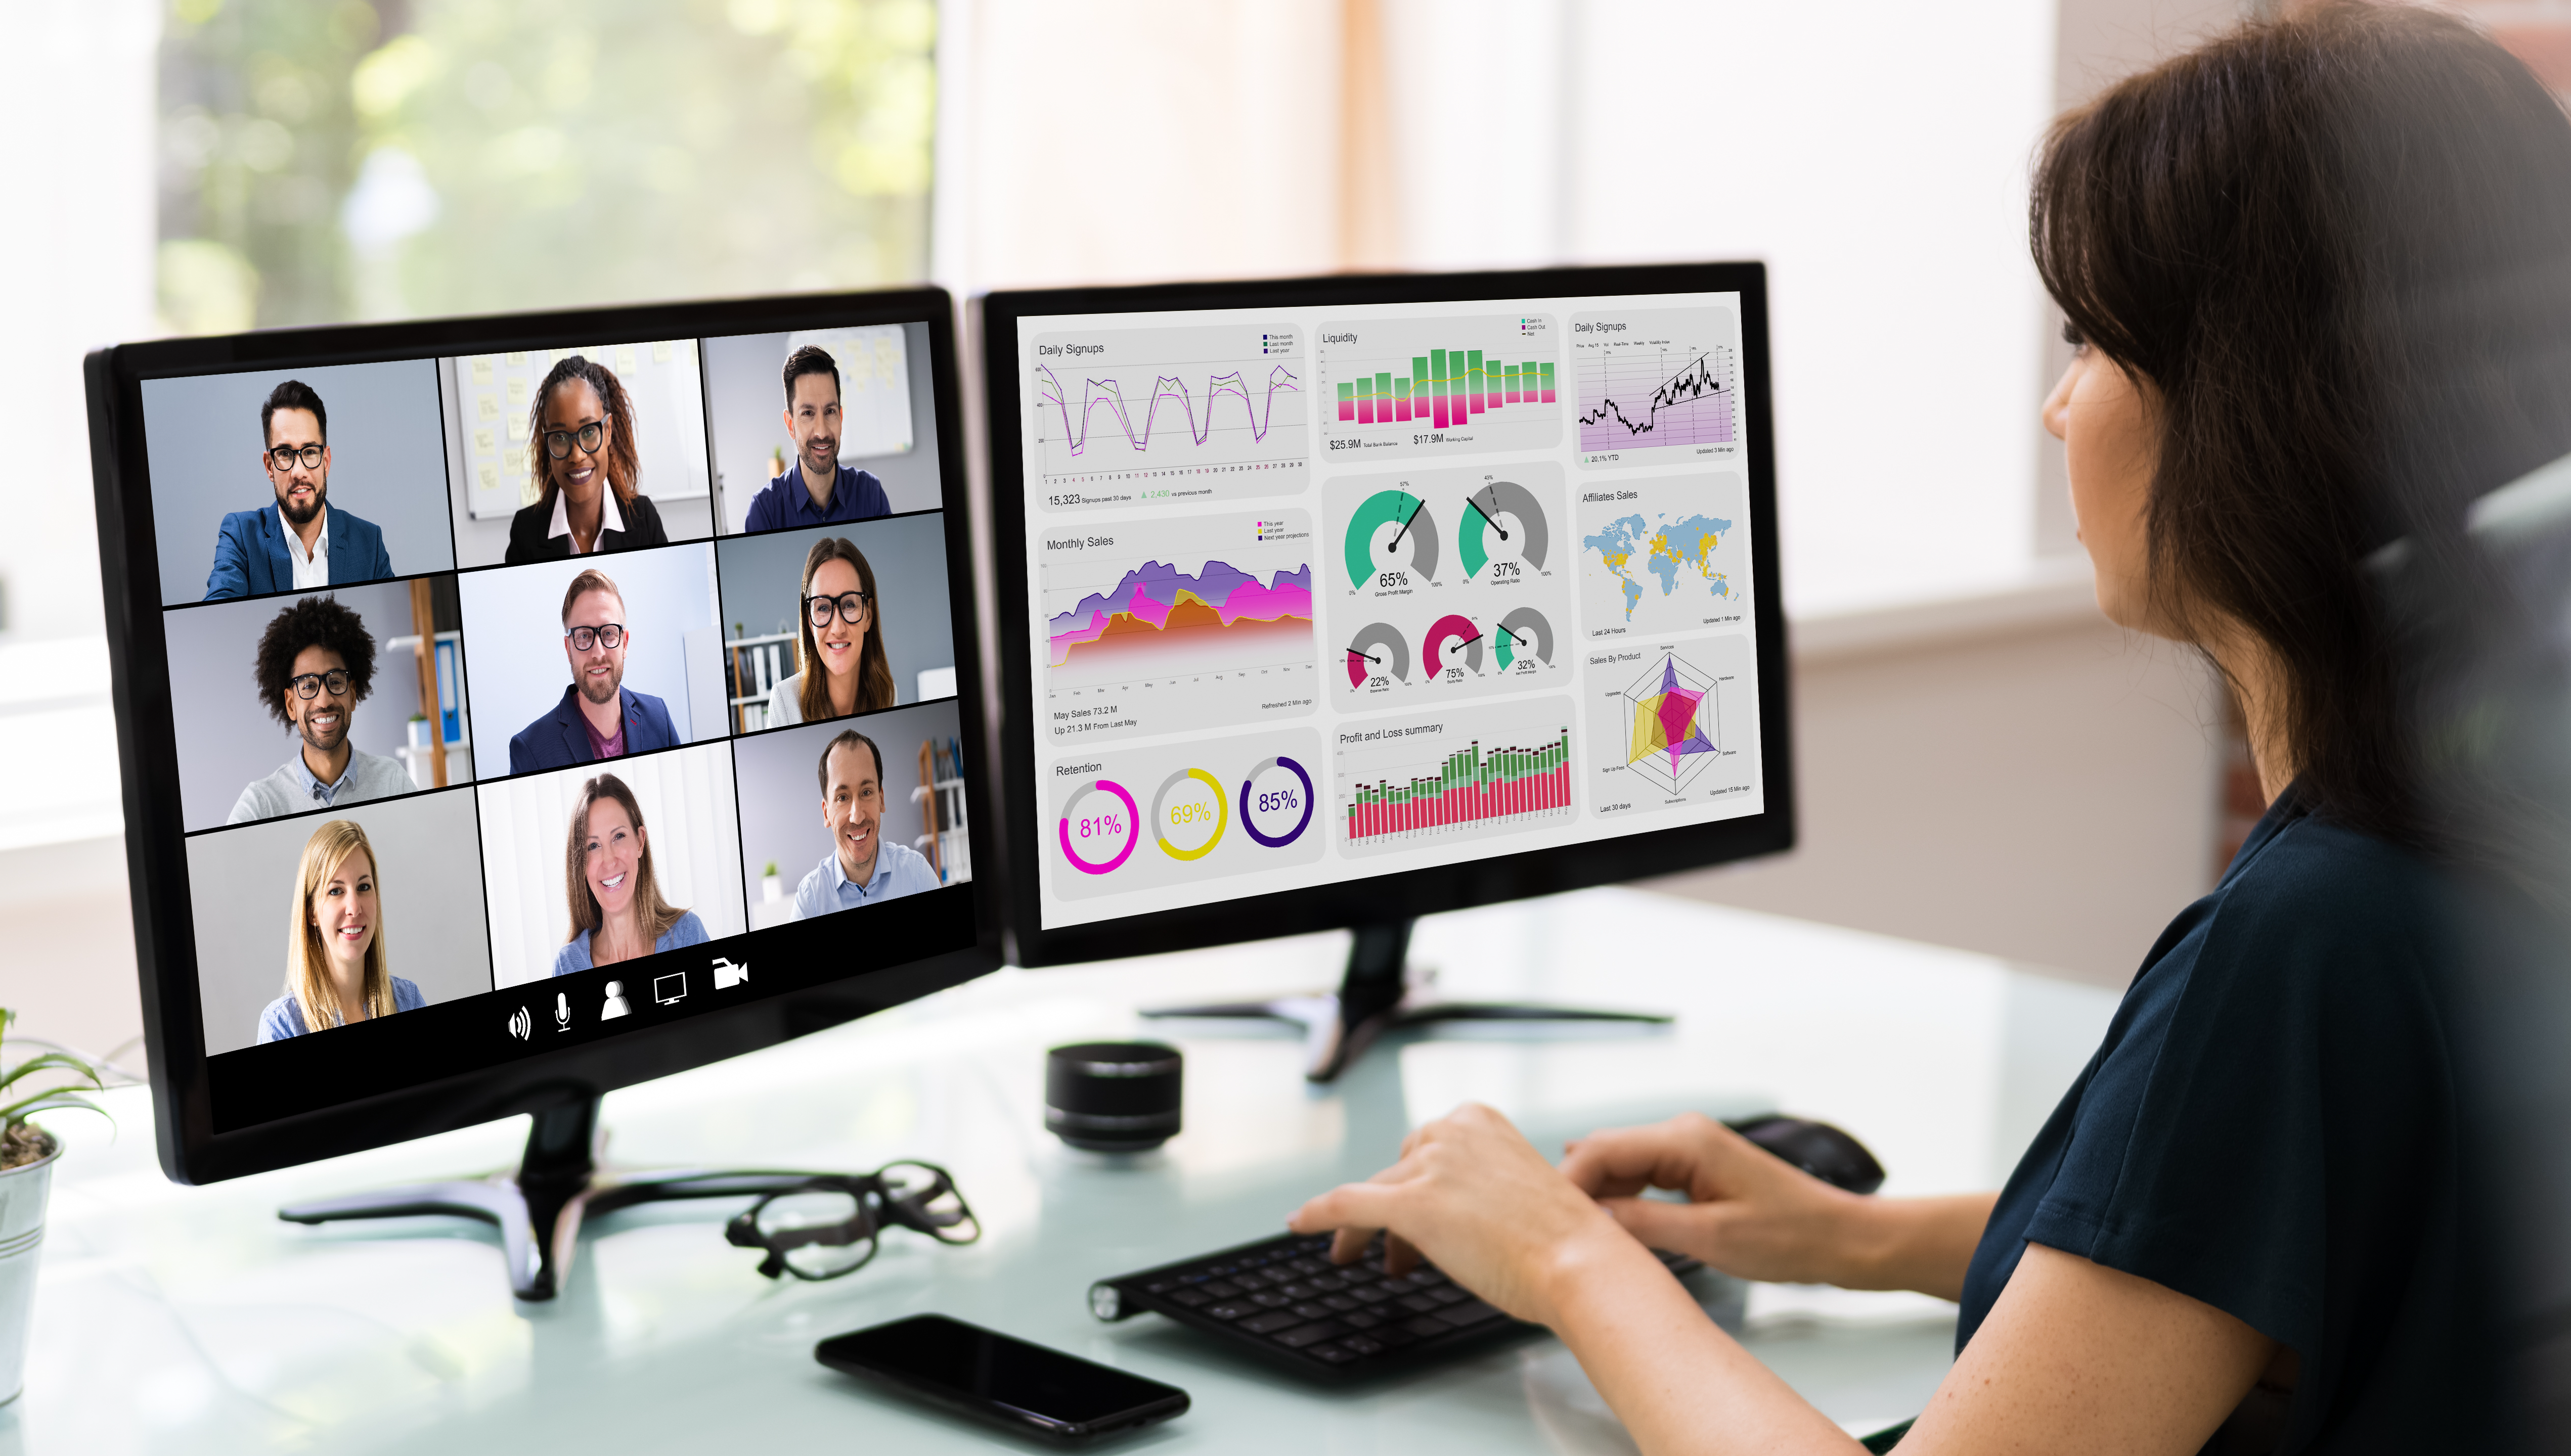 5 Ways to Level Up Your Virtual Presentation